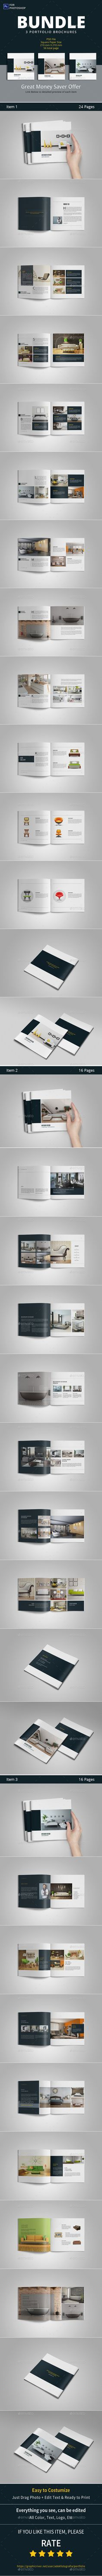 Portfolio Brochure BUNDLE - Templates PSD